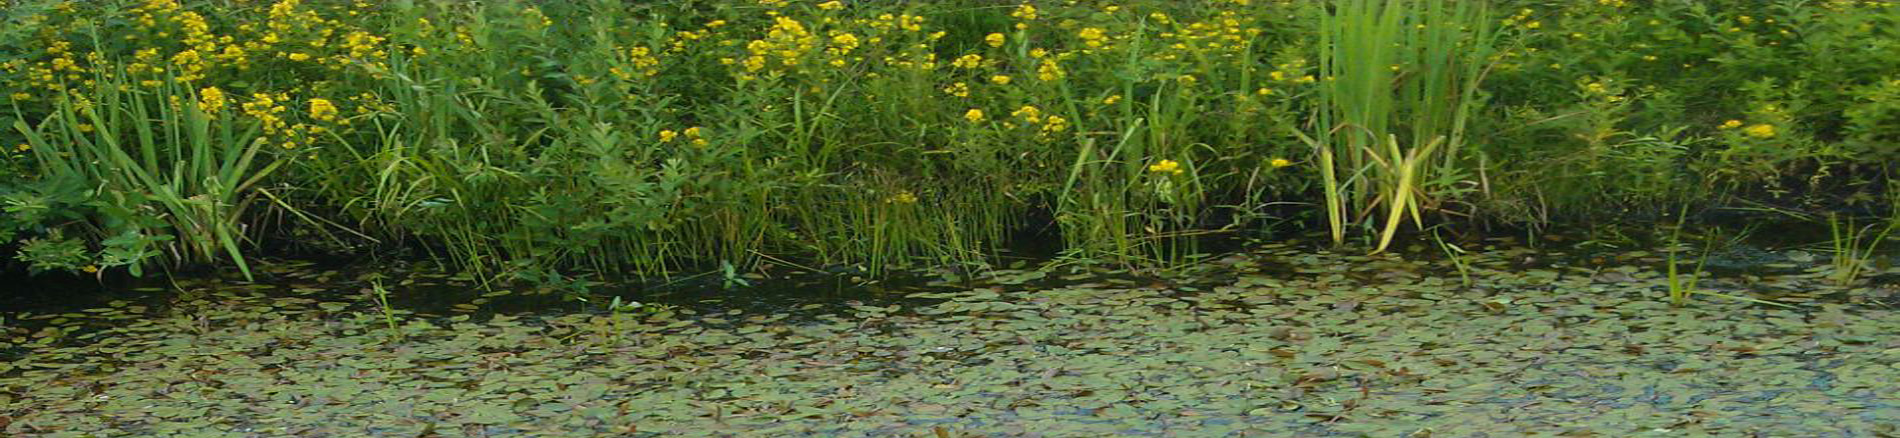 Hagedorn Waterplanten